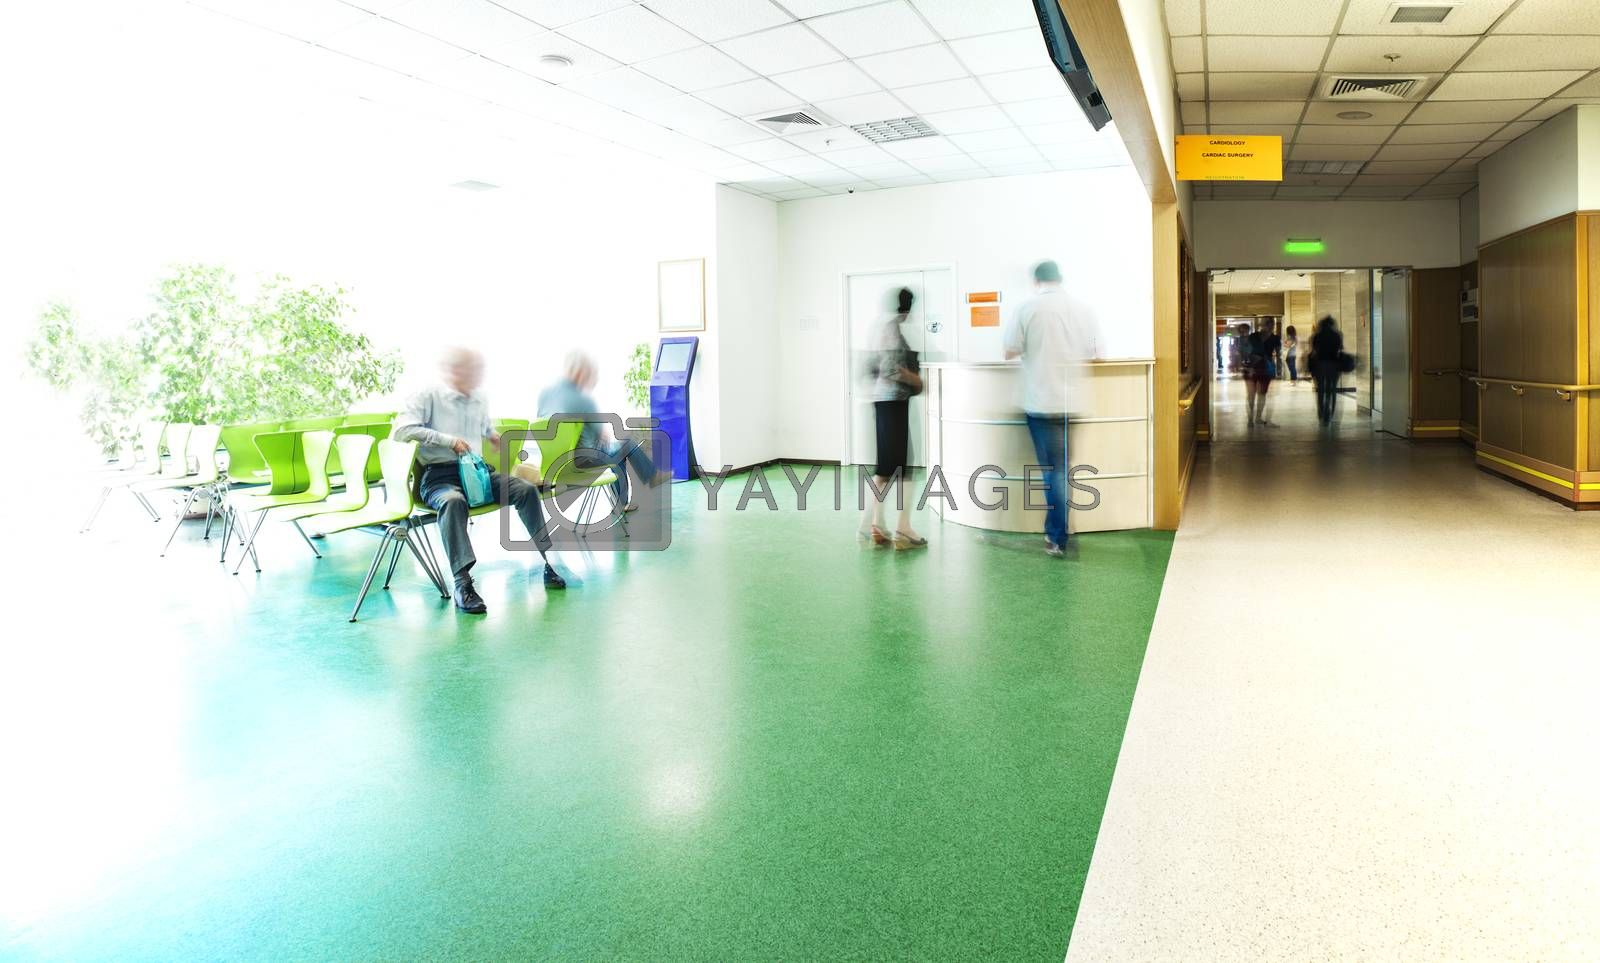 View of the registration desk, waiting area and a corridor in modern hospital with blurred figures of patients with a copy space.